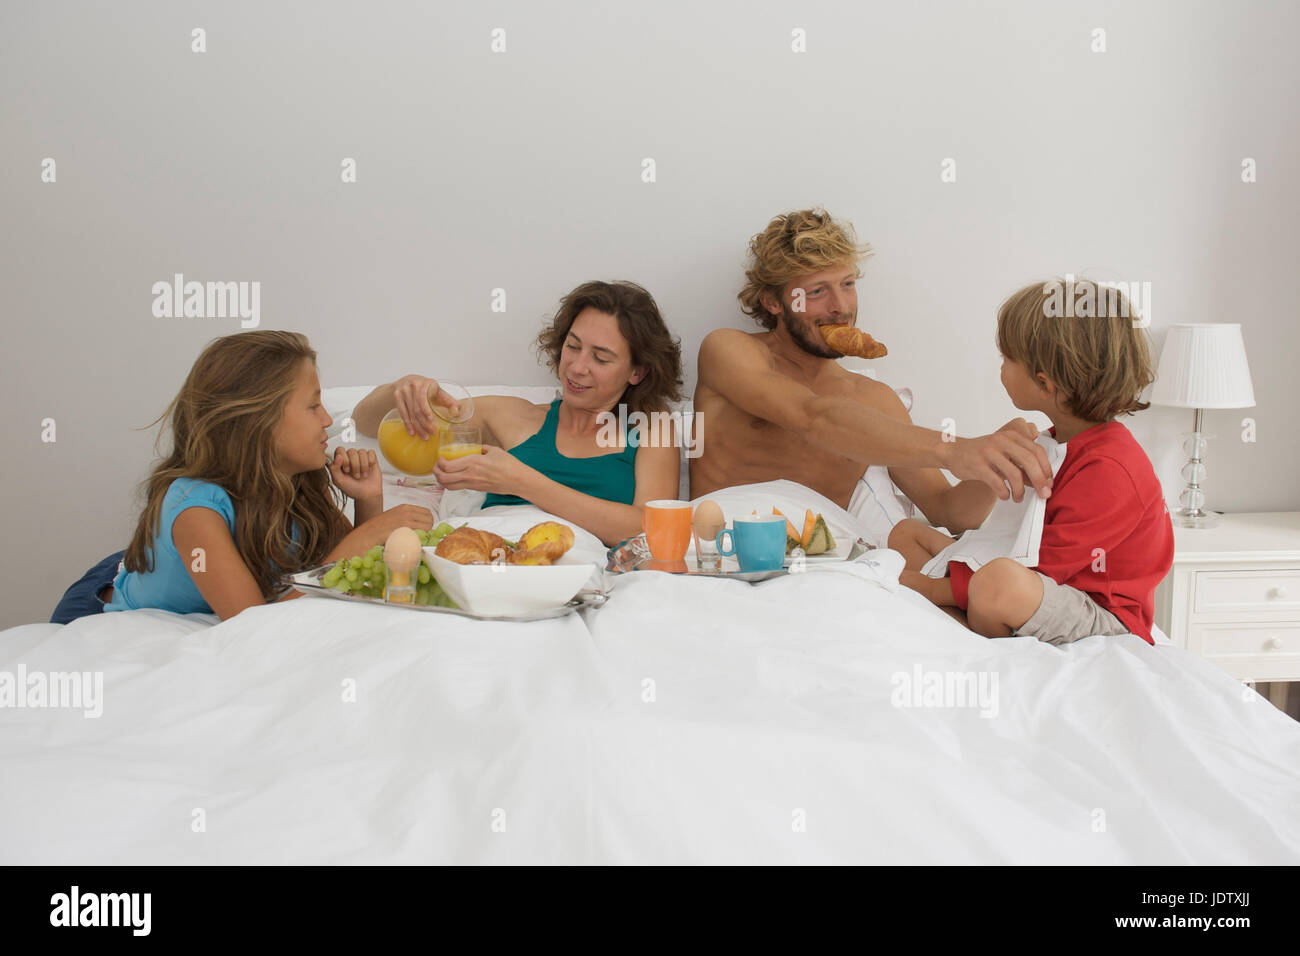 Young familiy having breakfast in bed - Stock Image